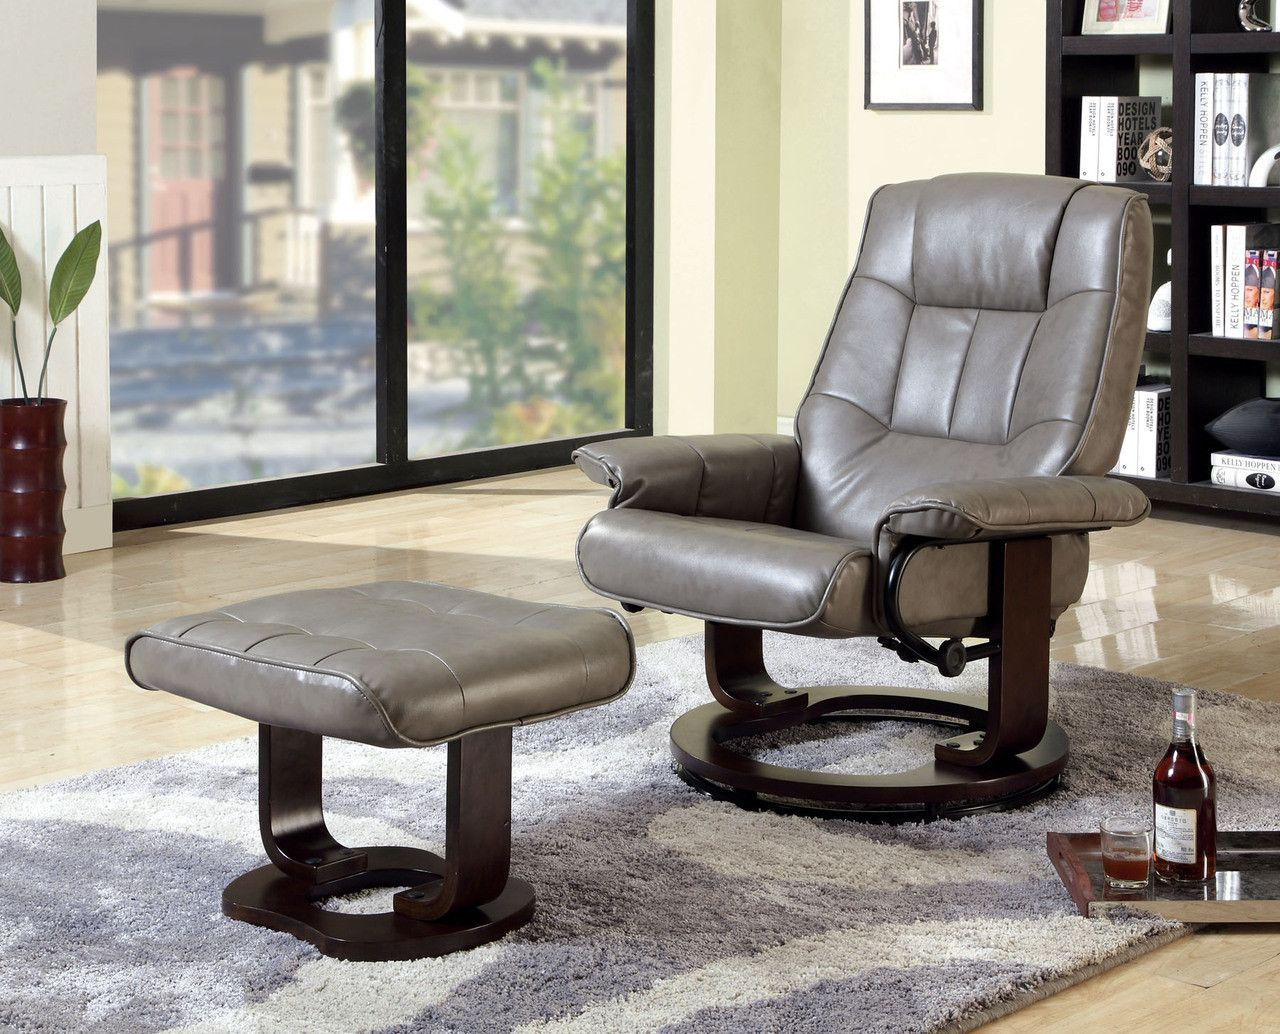 Cheste swivel lounger chair in gray w ottomancmrc6920gy